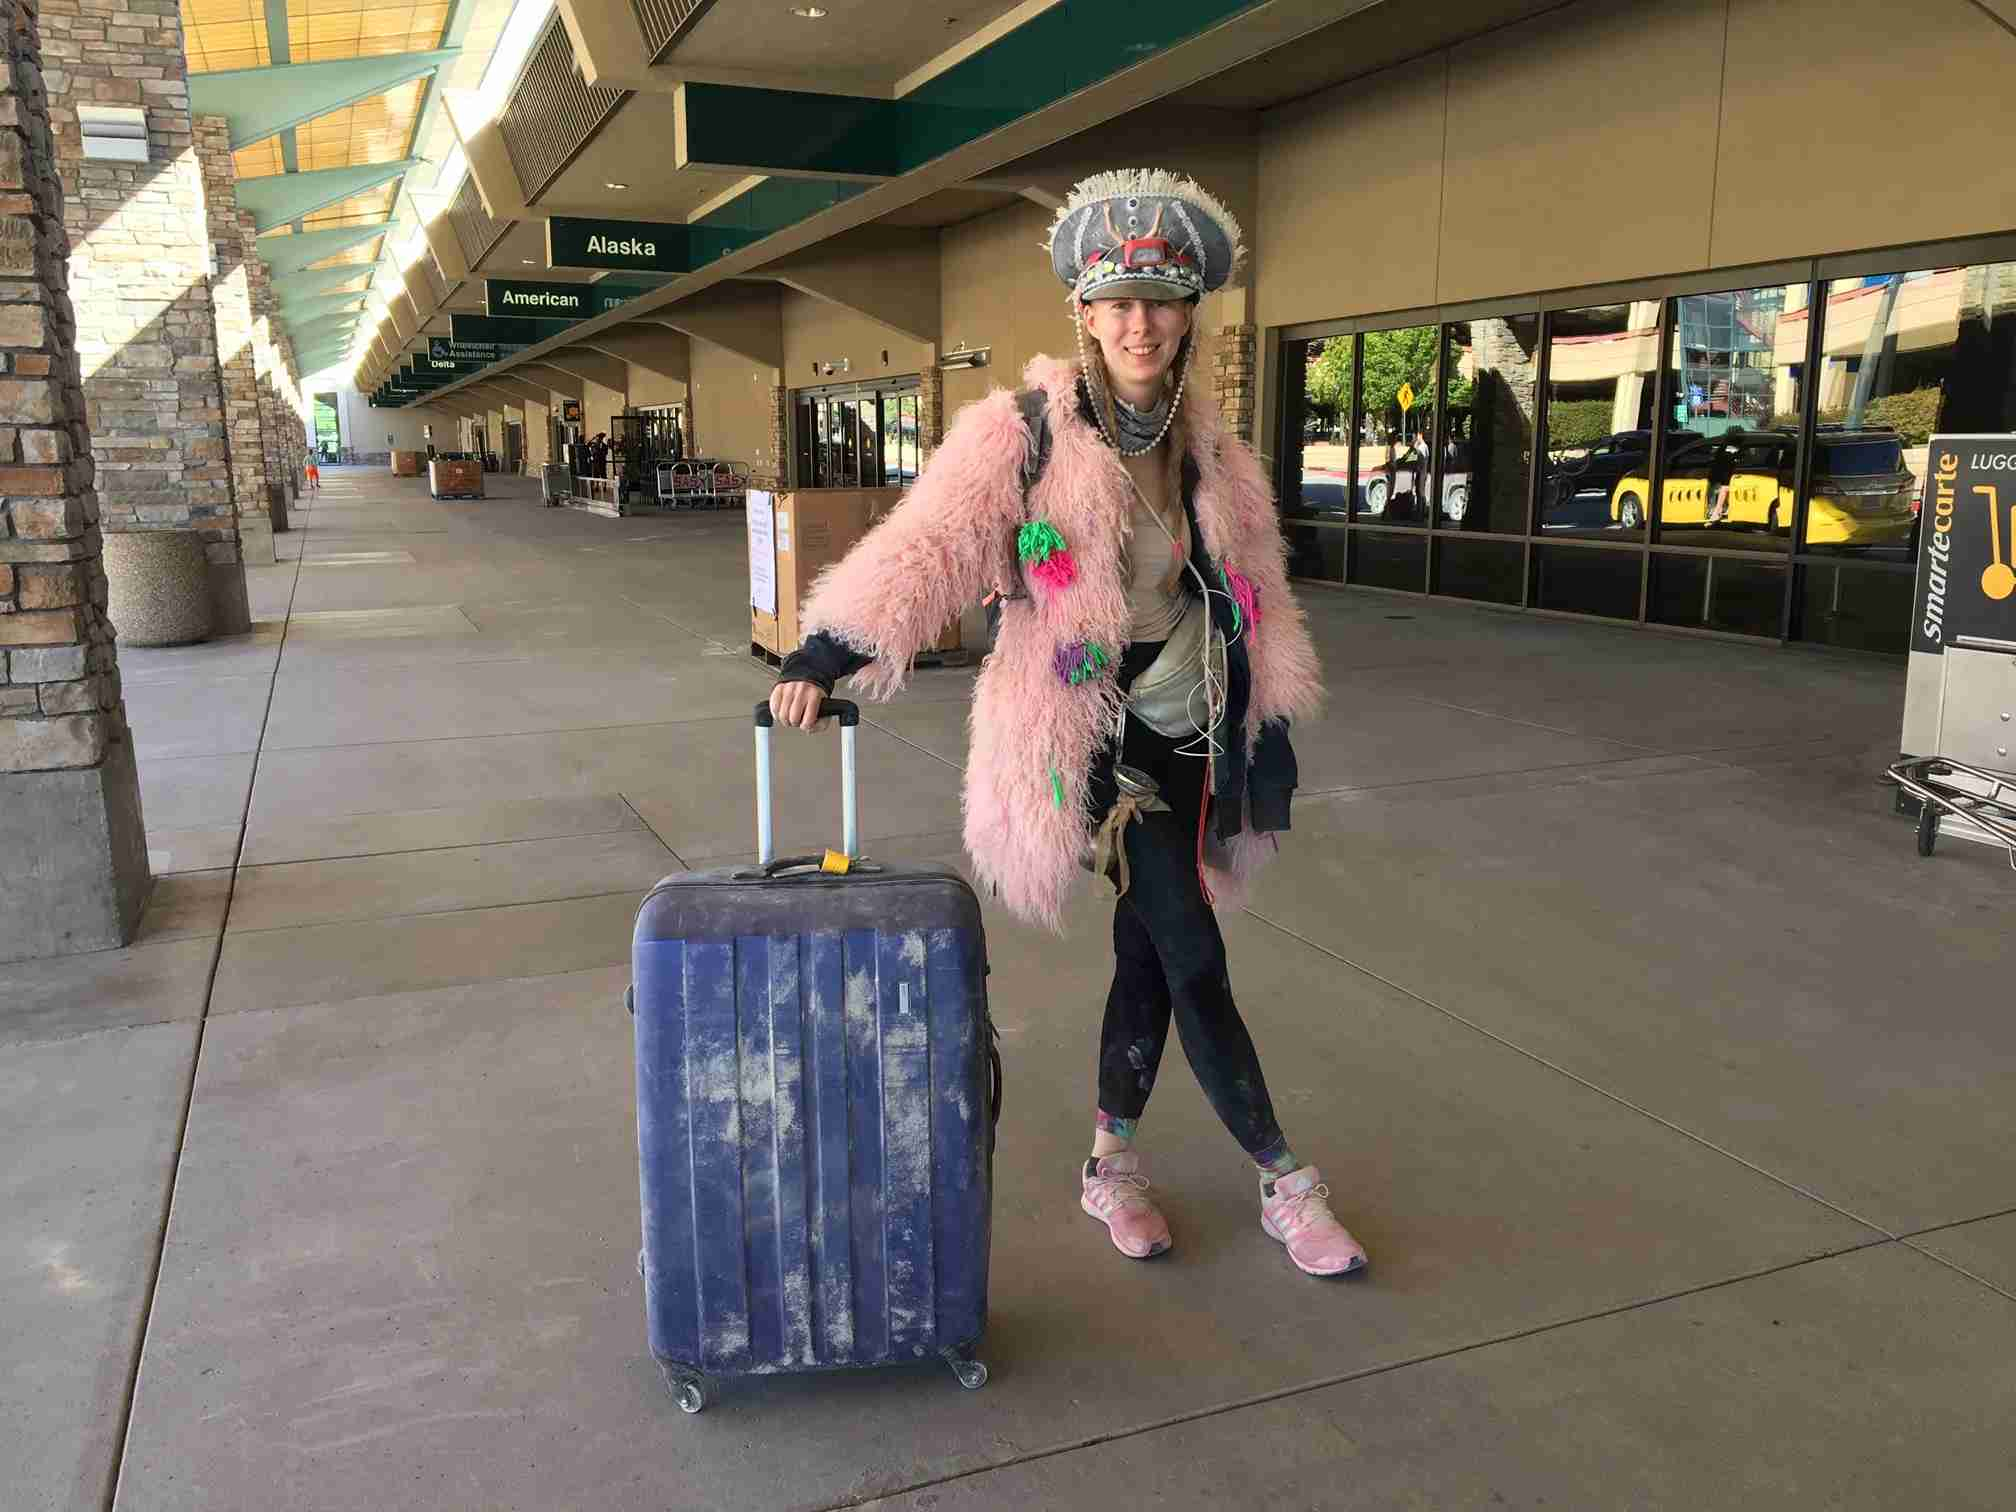 Luliia Kuznetsova, who was on her way to San Francisco to catch a flight back to Berlin, passes through Reno